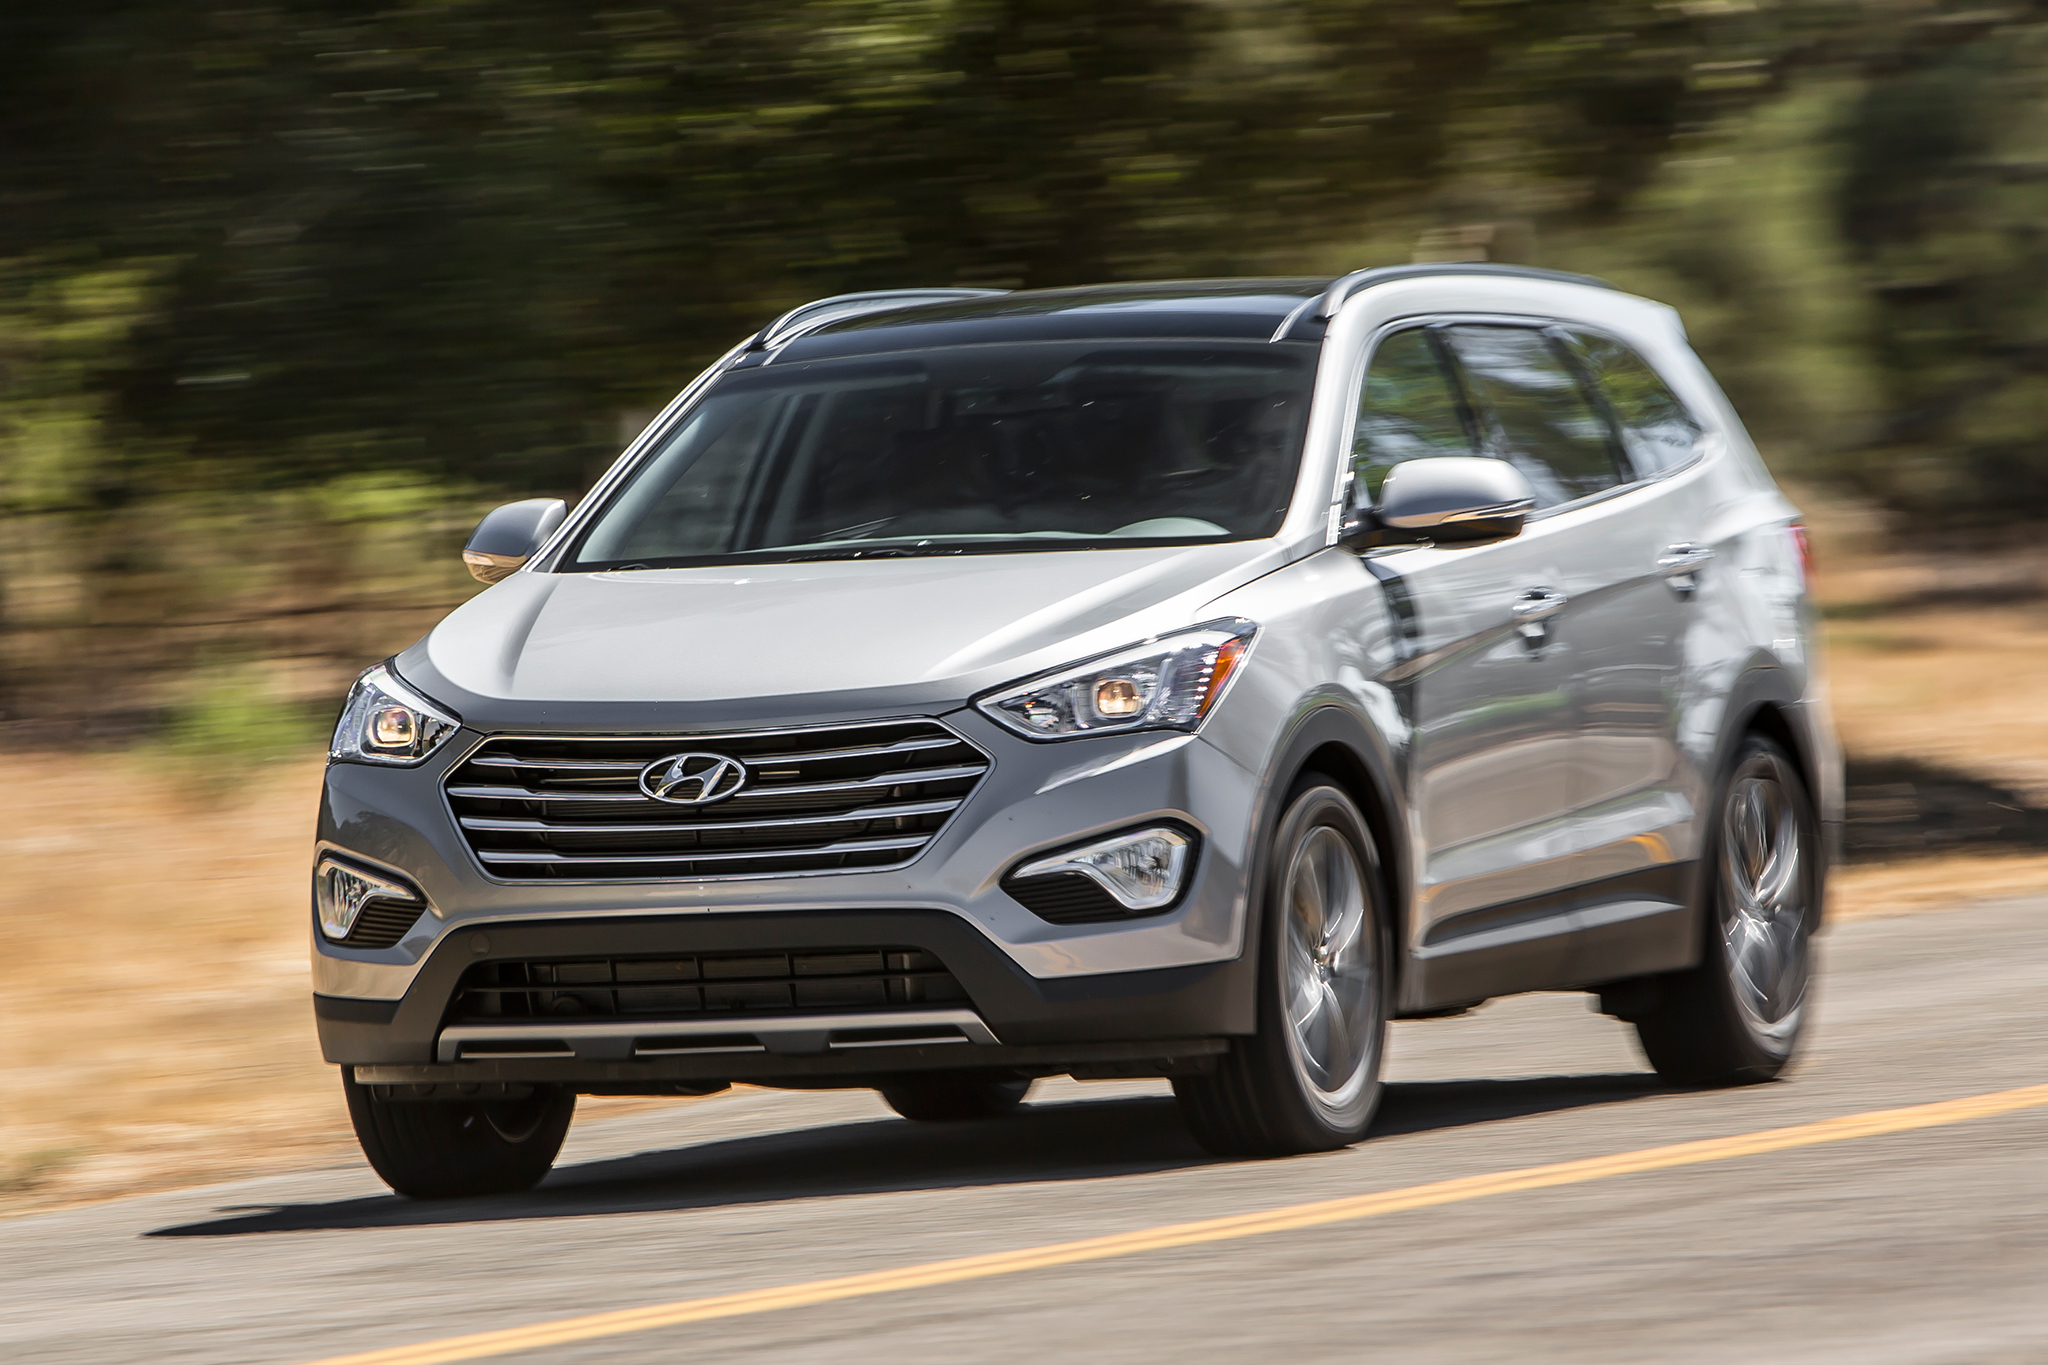 2014 Hyundai Santa Fe Limited AWD First Test